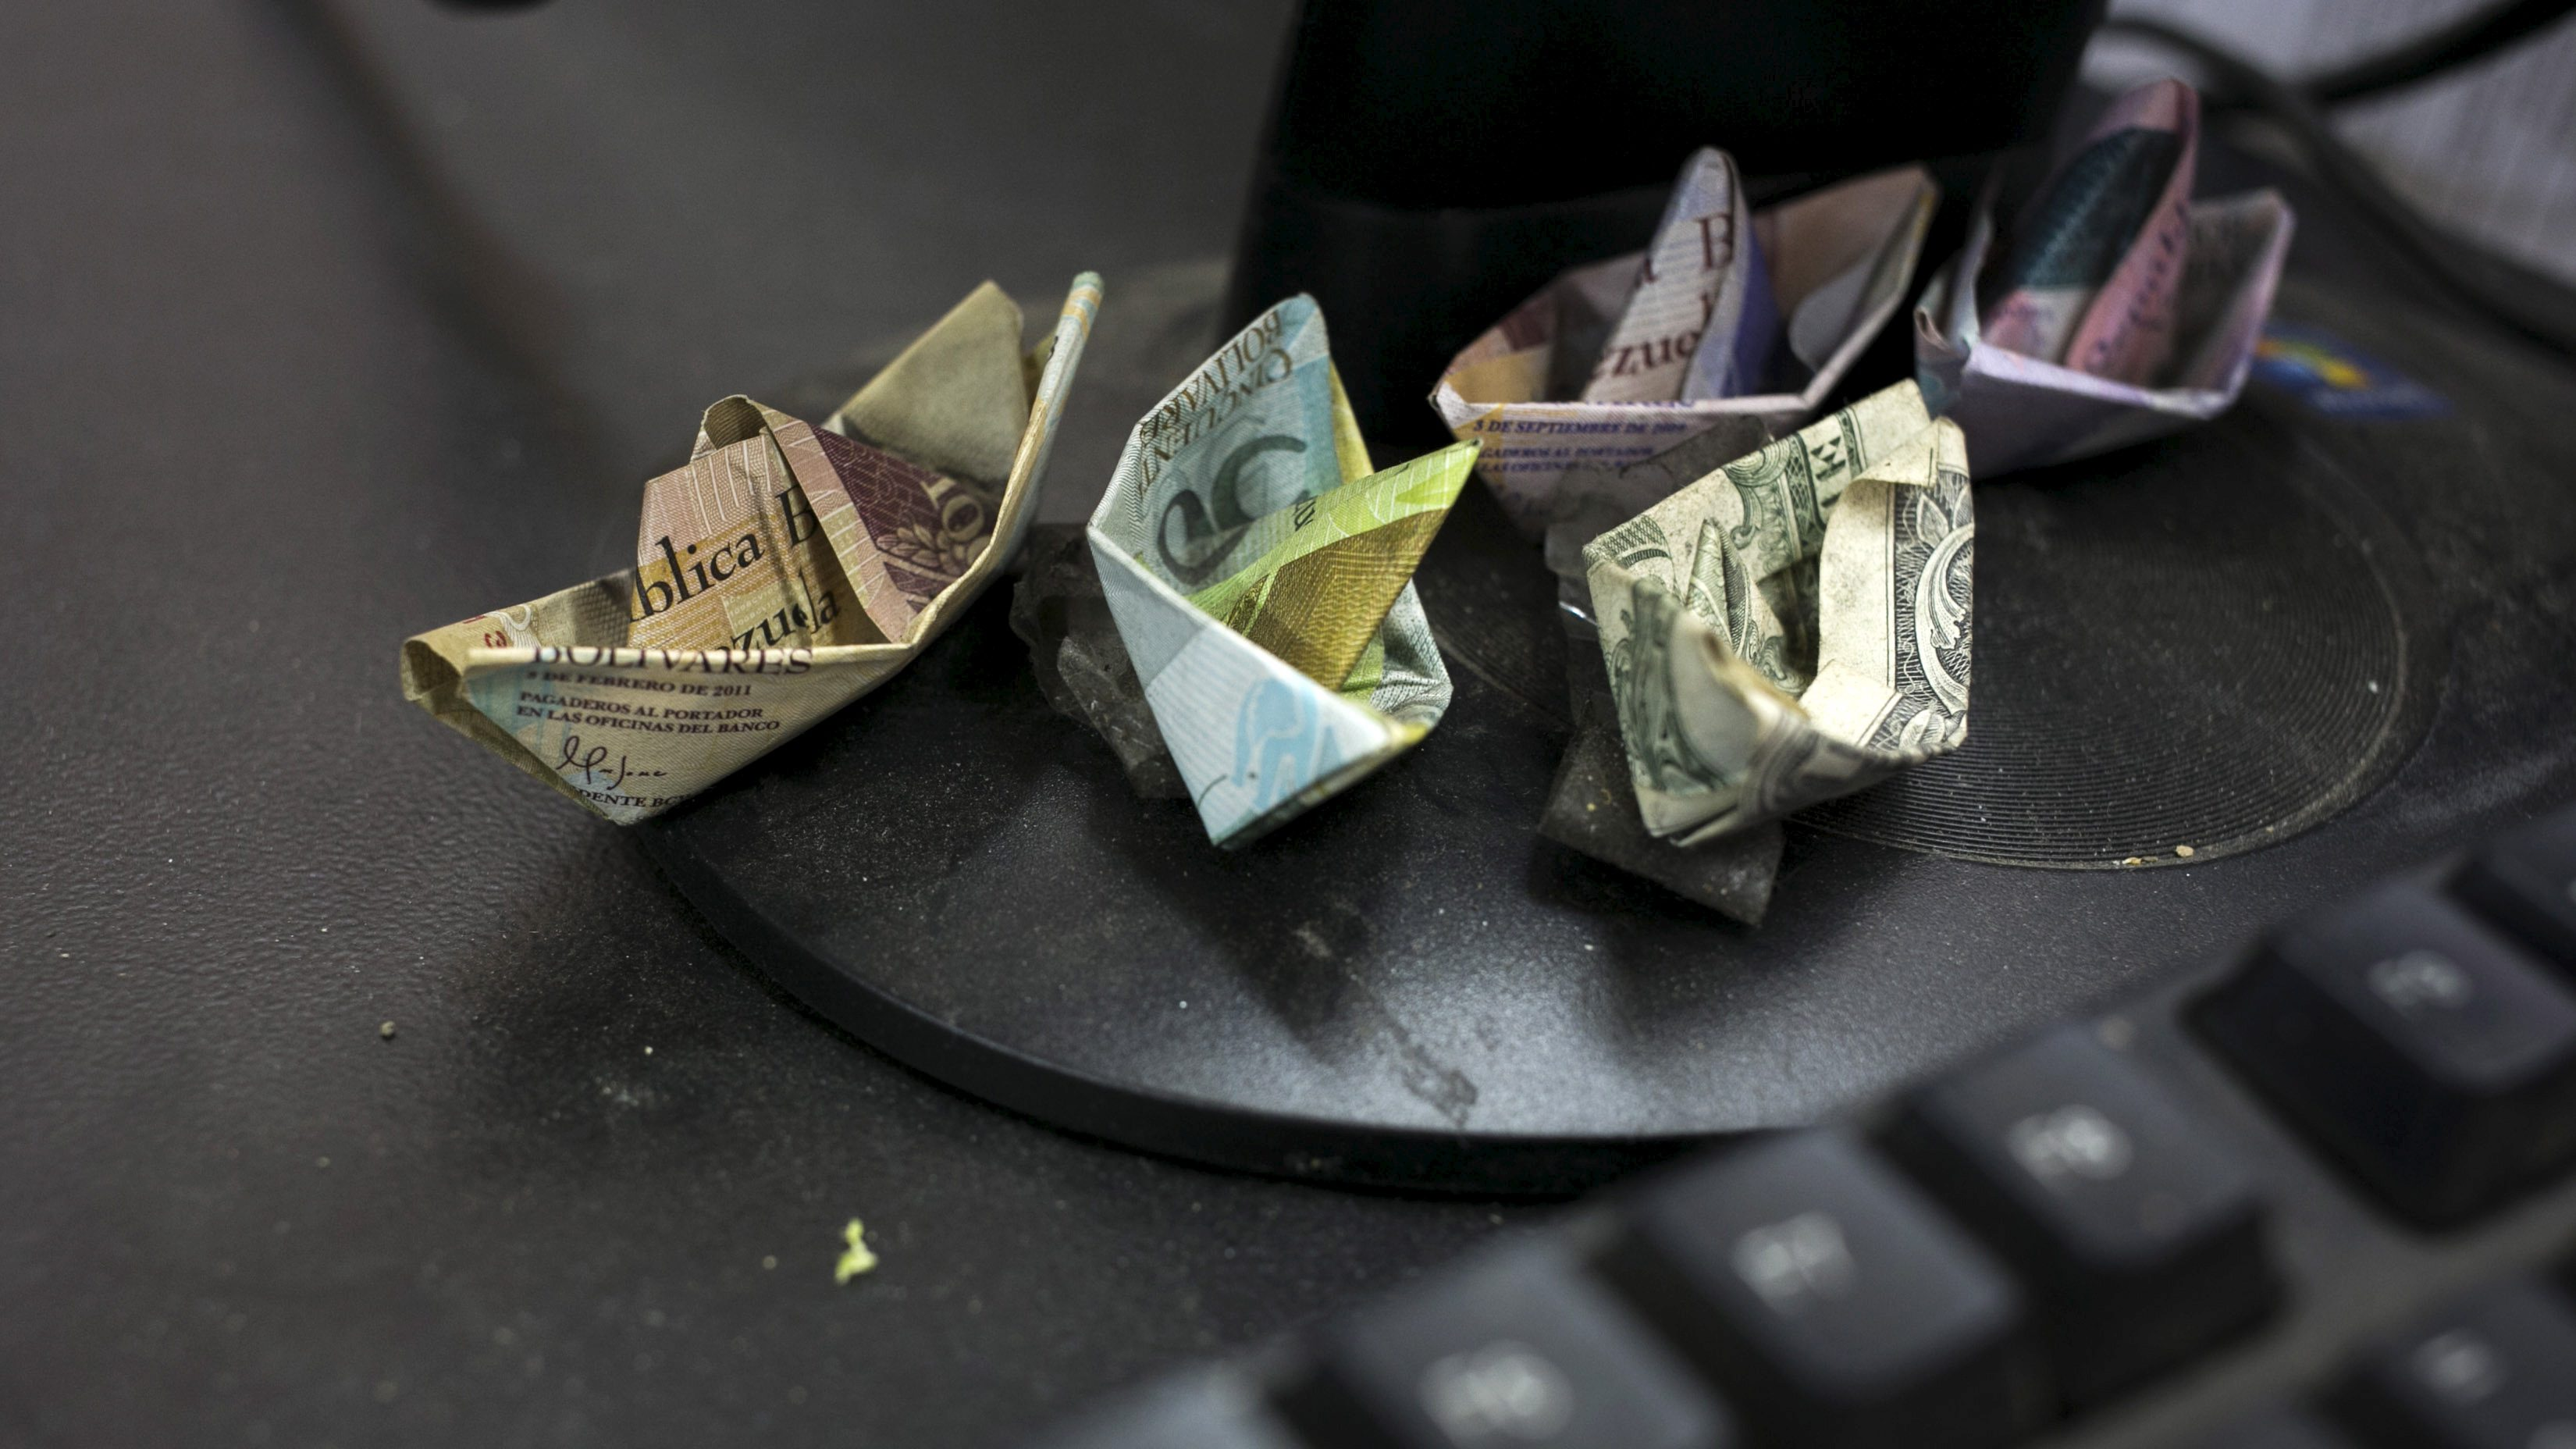 Venezuelan bolivar banknotes and a U.S. dollar banknote, folded as boats, are seen at a fruit and vegetable store in Caracas July 10, 2015. Origami-like boats made from Venezuela's rapidly depreciating bolivar bills sit on the cash register of the small fruit and vegetable store in Caracas. Cashier Marisol Garcia makes the bolivar boats to illustrate roaring inflation and the currency's tumble on the black market, where even the country's biggest bill is worth just 16 U.S. cents.